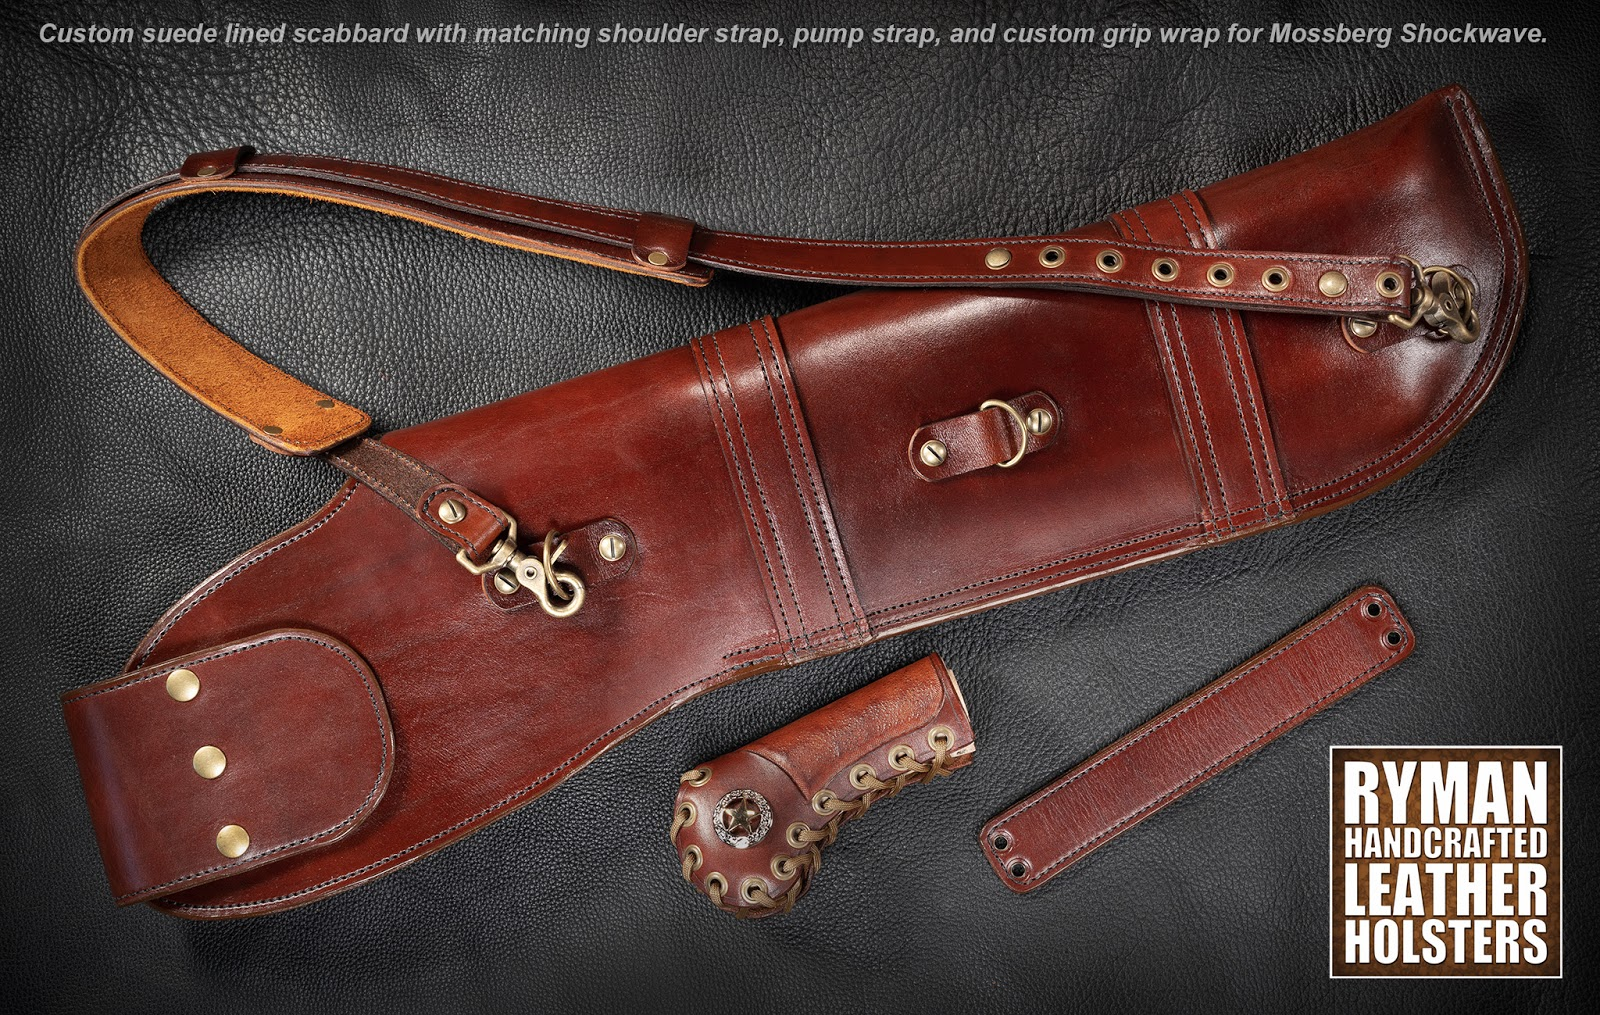 Custom Leather Shotgun Scabbard